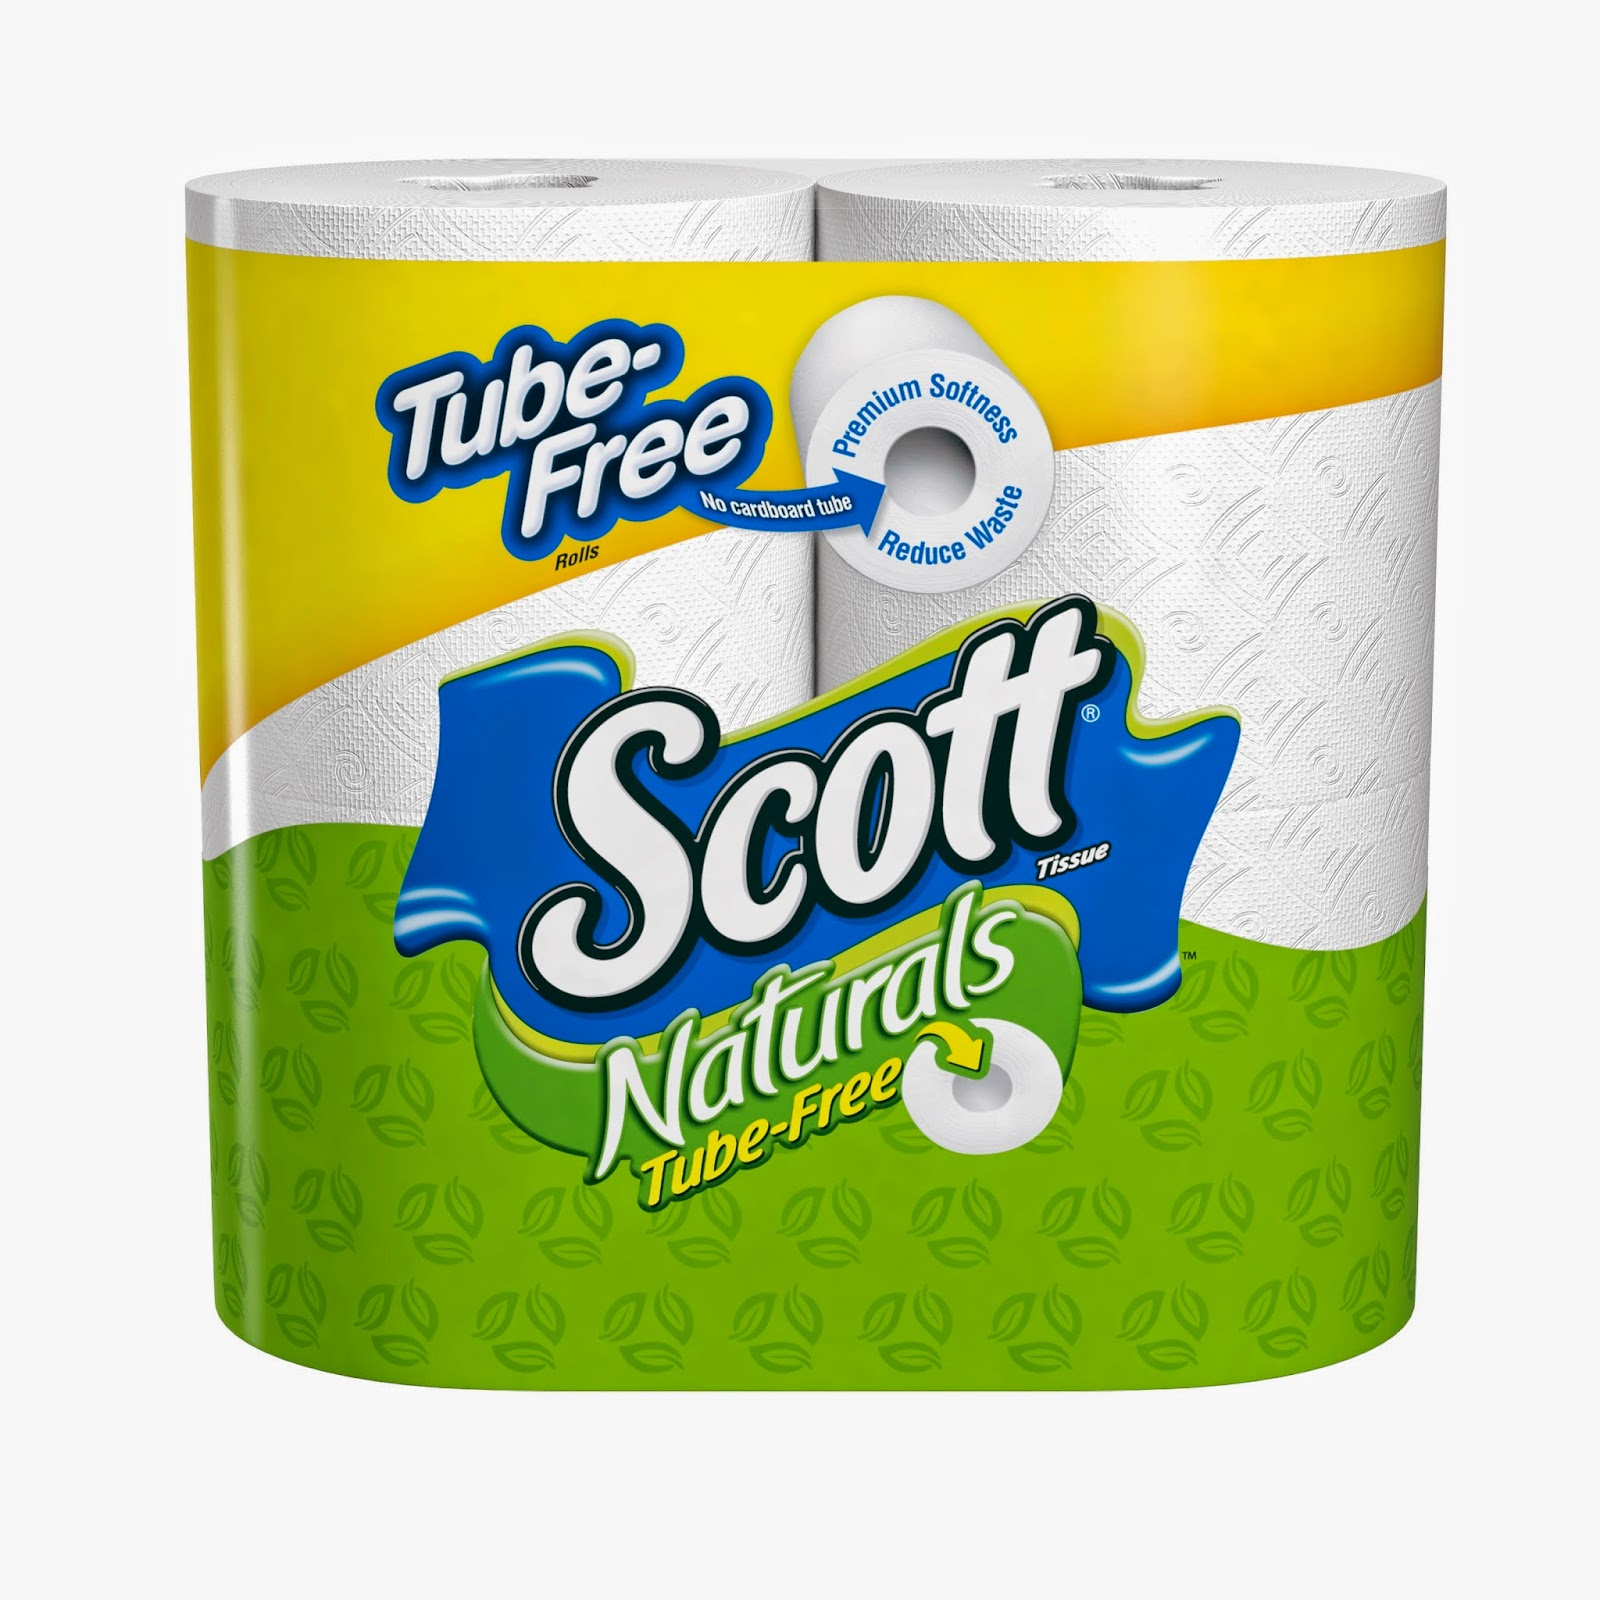 Scott Naturals® Tube-Free - Review and Giveaway